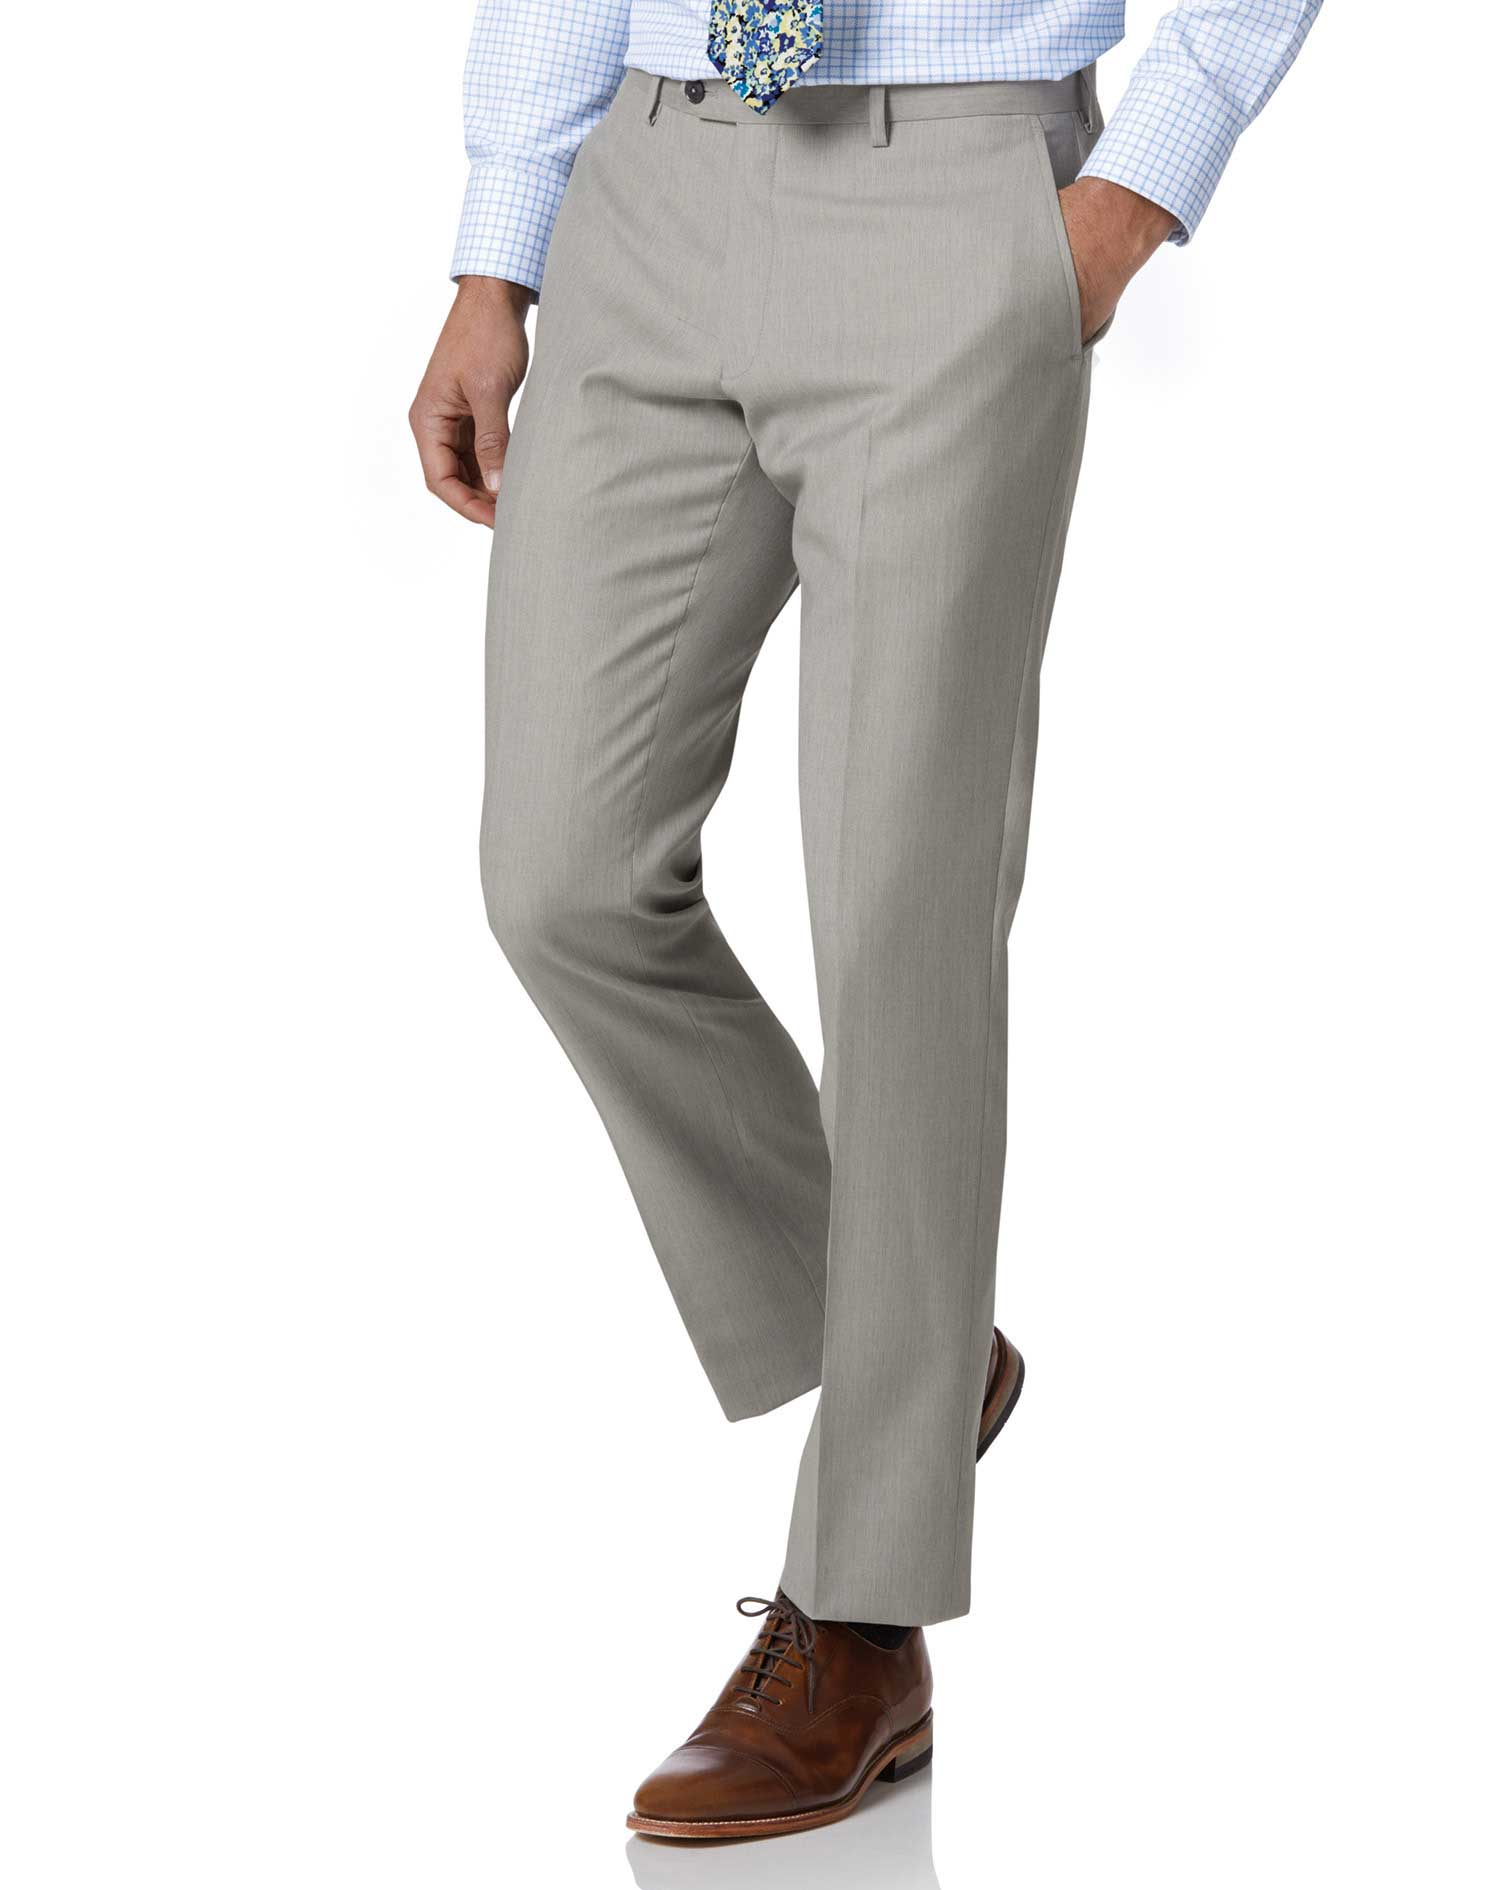 Light Grey Slim Fit Twill Business Suit Trousers Size W38 L32 by Charles Tyrwhitt